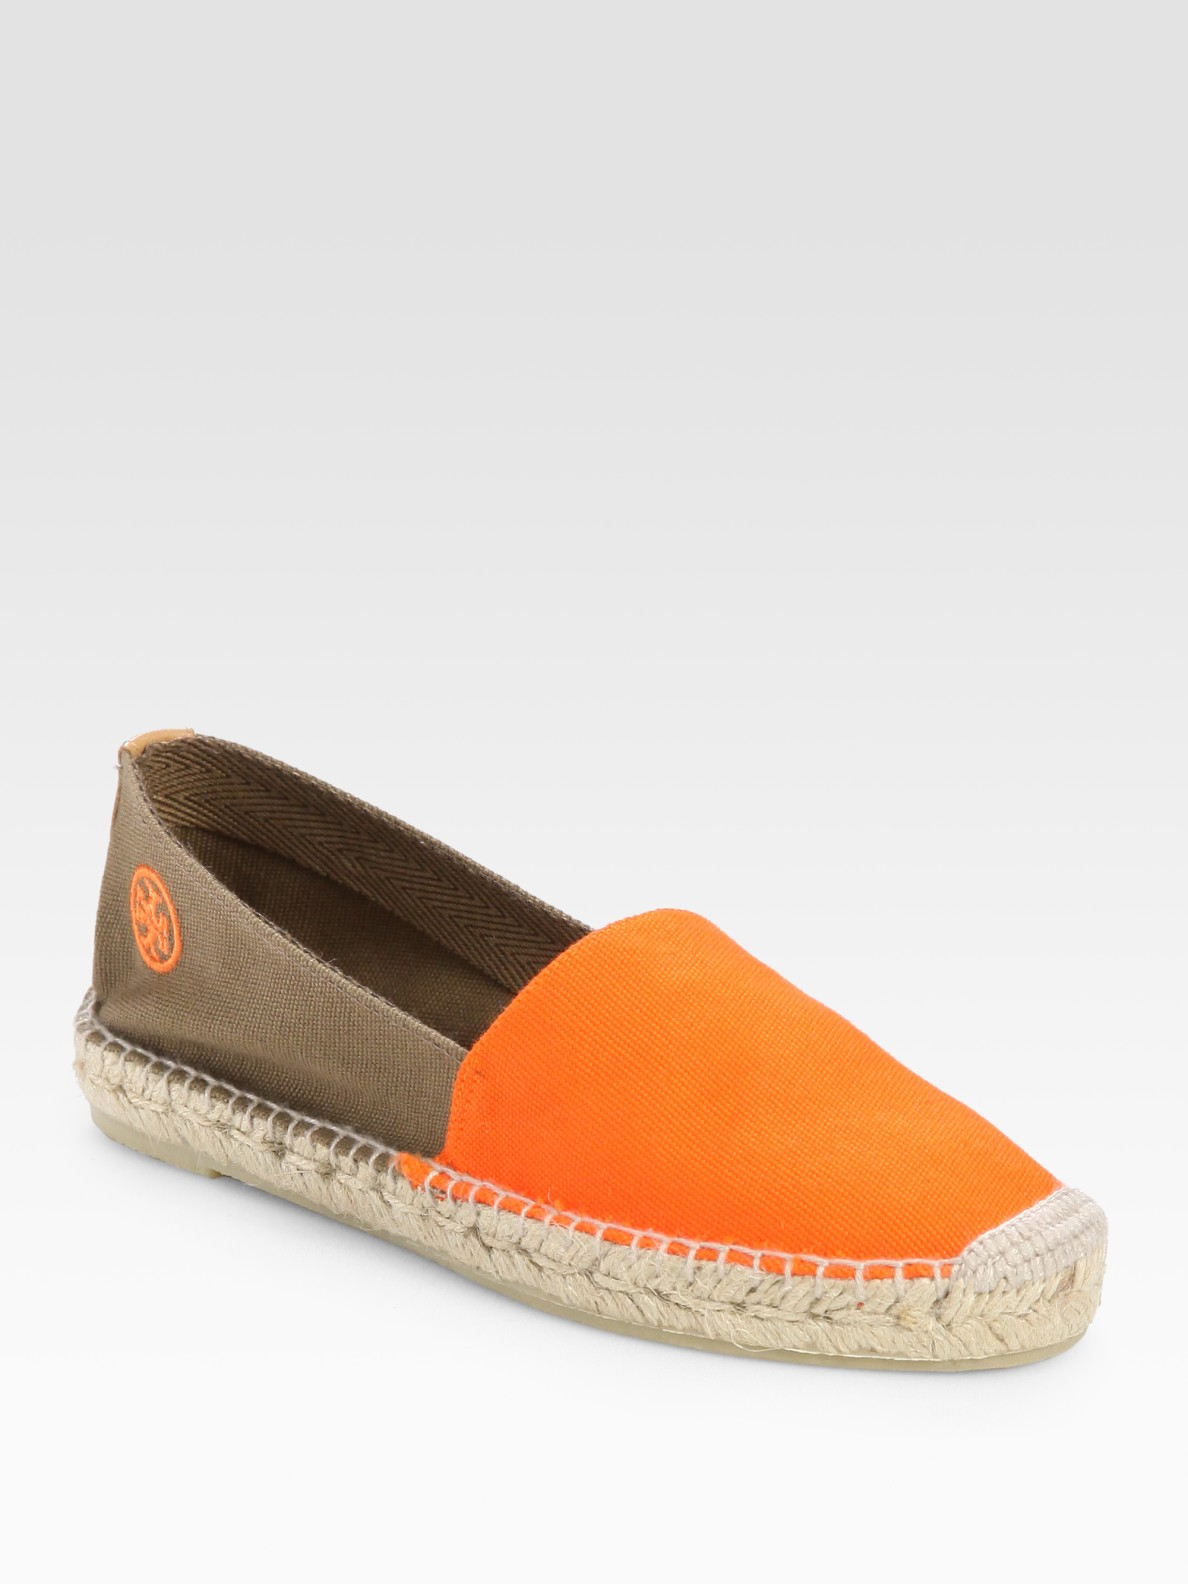 Tory Burch Two Tone Espadrille Canvas Slides In Orange